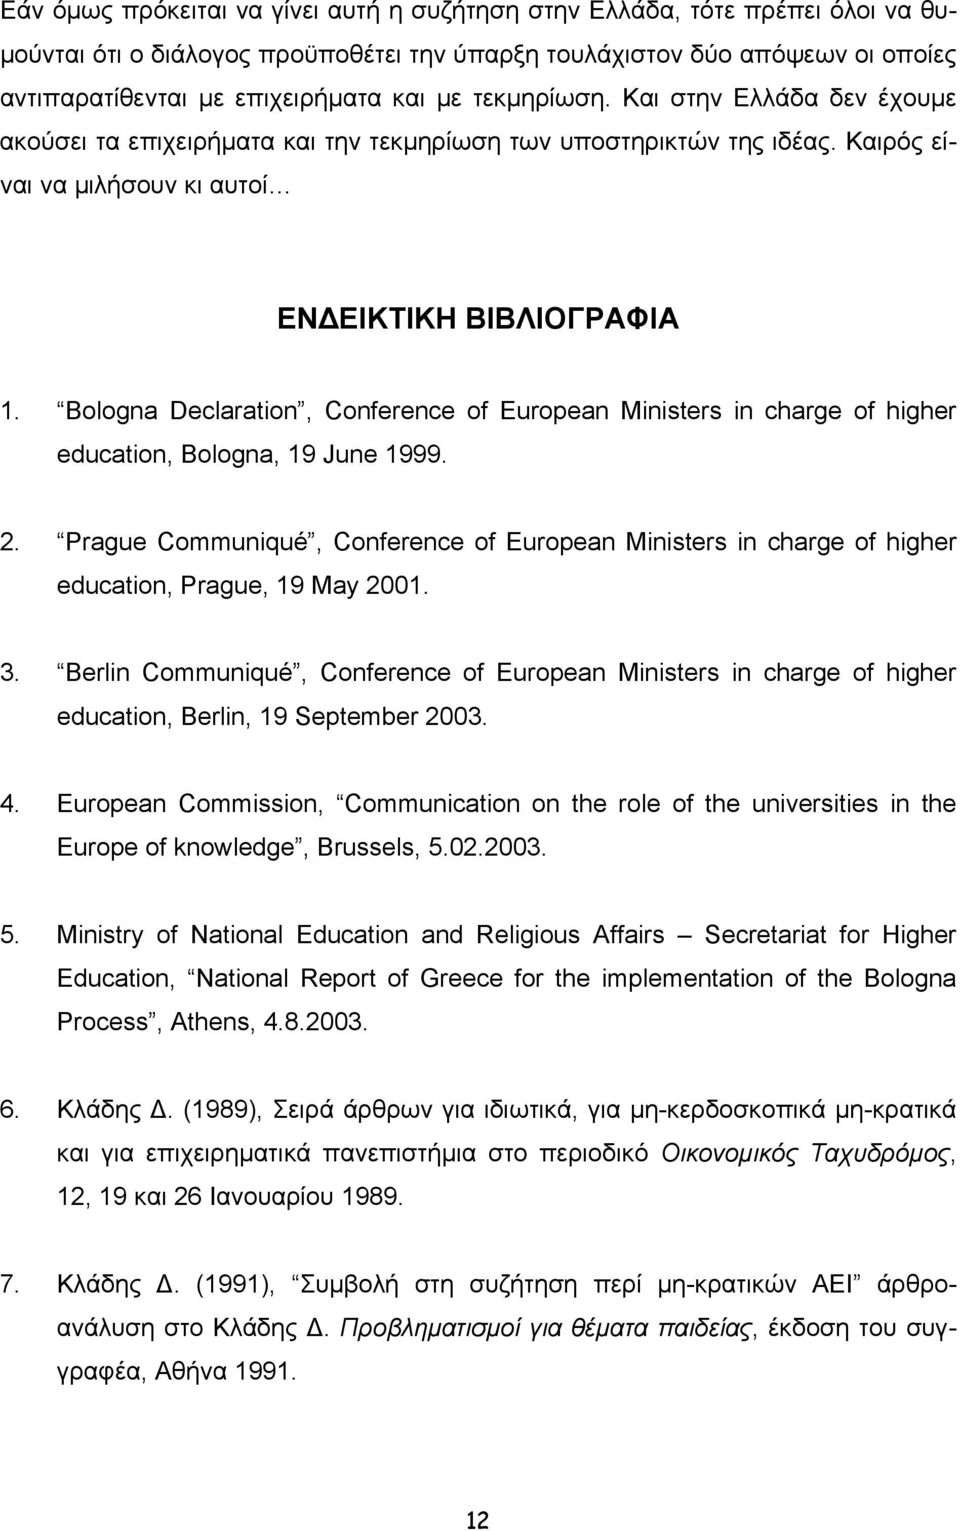 Bologna Declaration, Conference of European Ministers in charge of higher education, Bologna, 19 June 1999. 2.